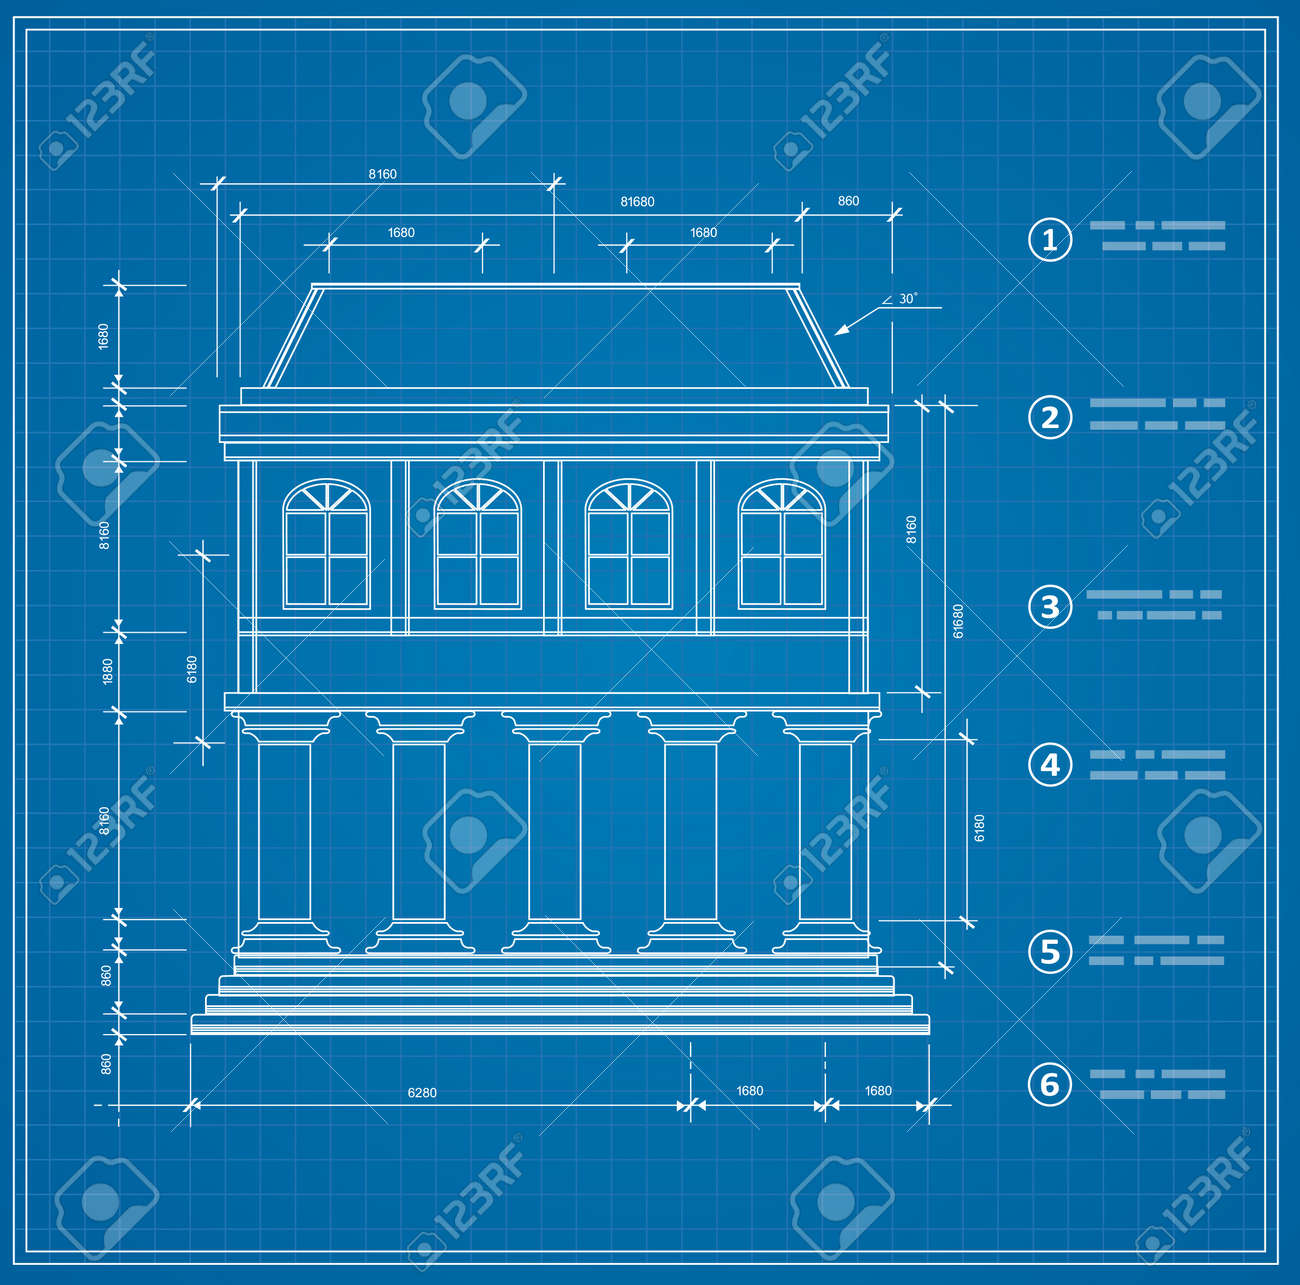 Blueprint facility and engineering printout home royalty free blueprint facility and engineering printout home stock vector 35600087 malvernweather Choice Image